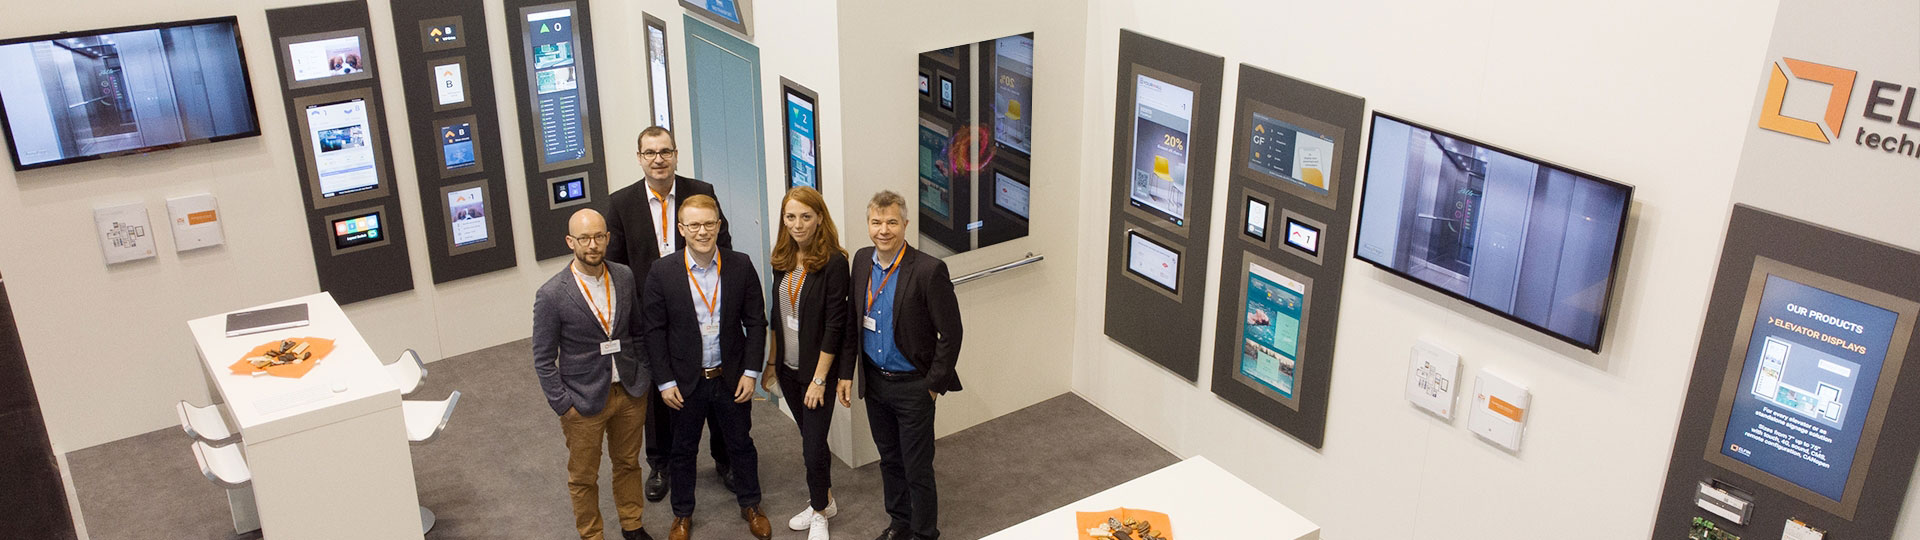 ELFIN Technology auf der Interlift 2019